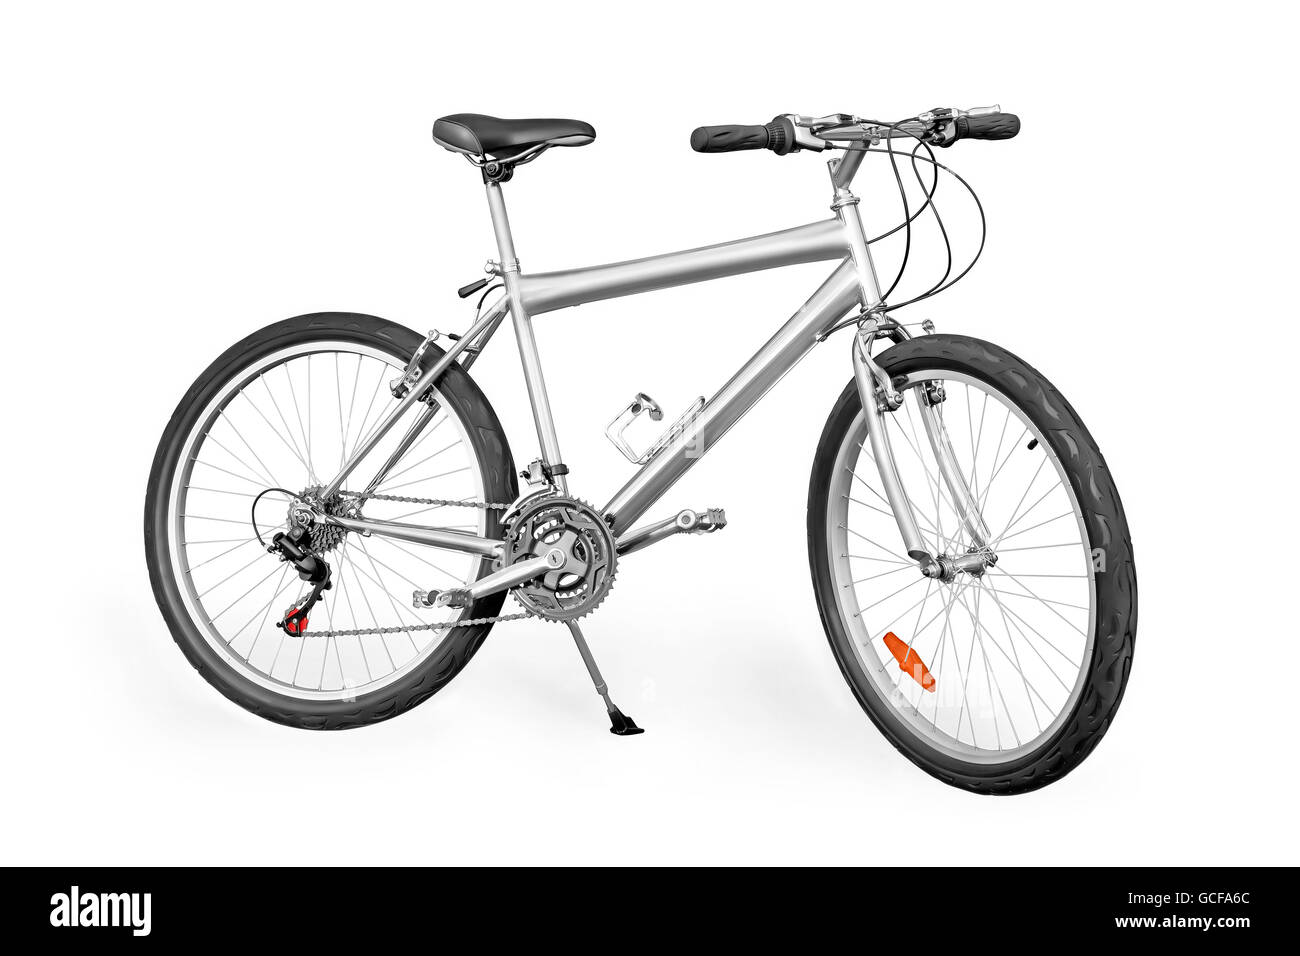 Silver colored unpainted entry-level mountain bike isolated on white with clipping path - Stock Image